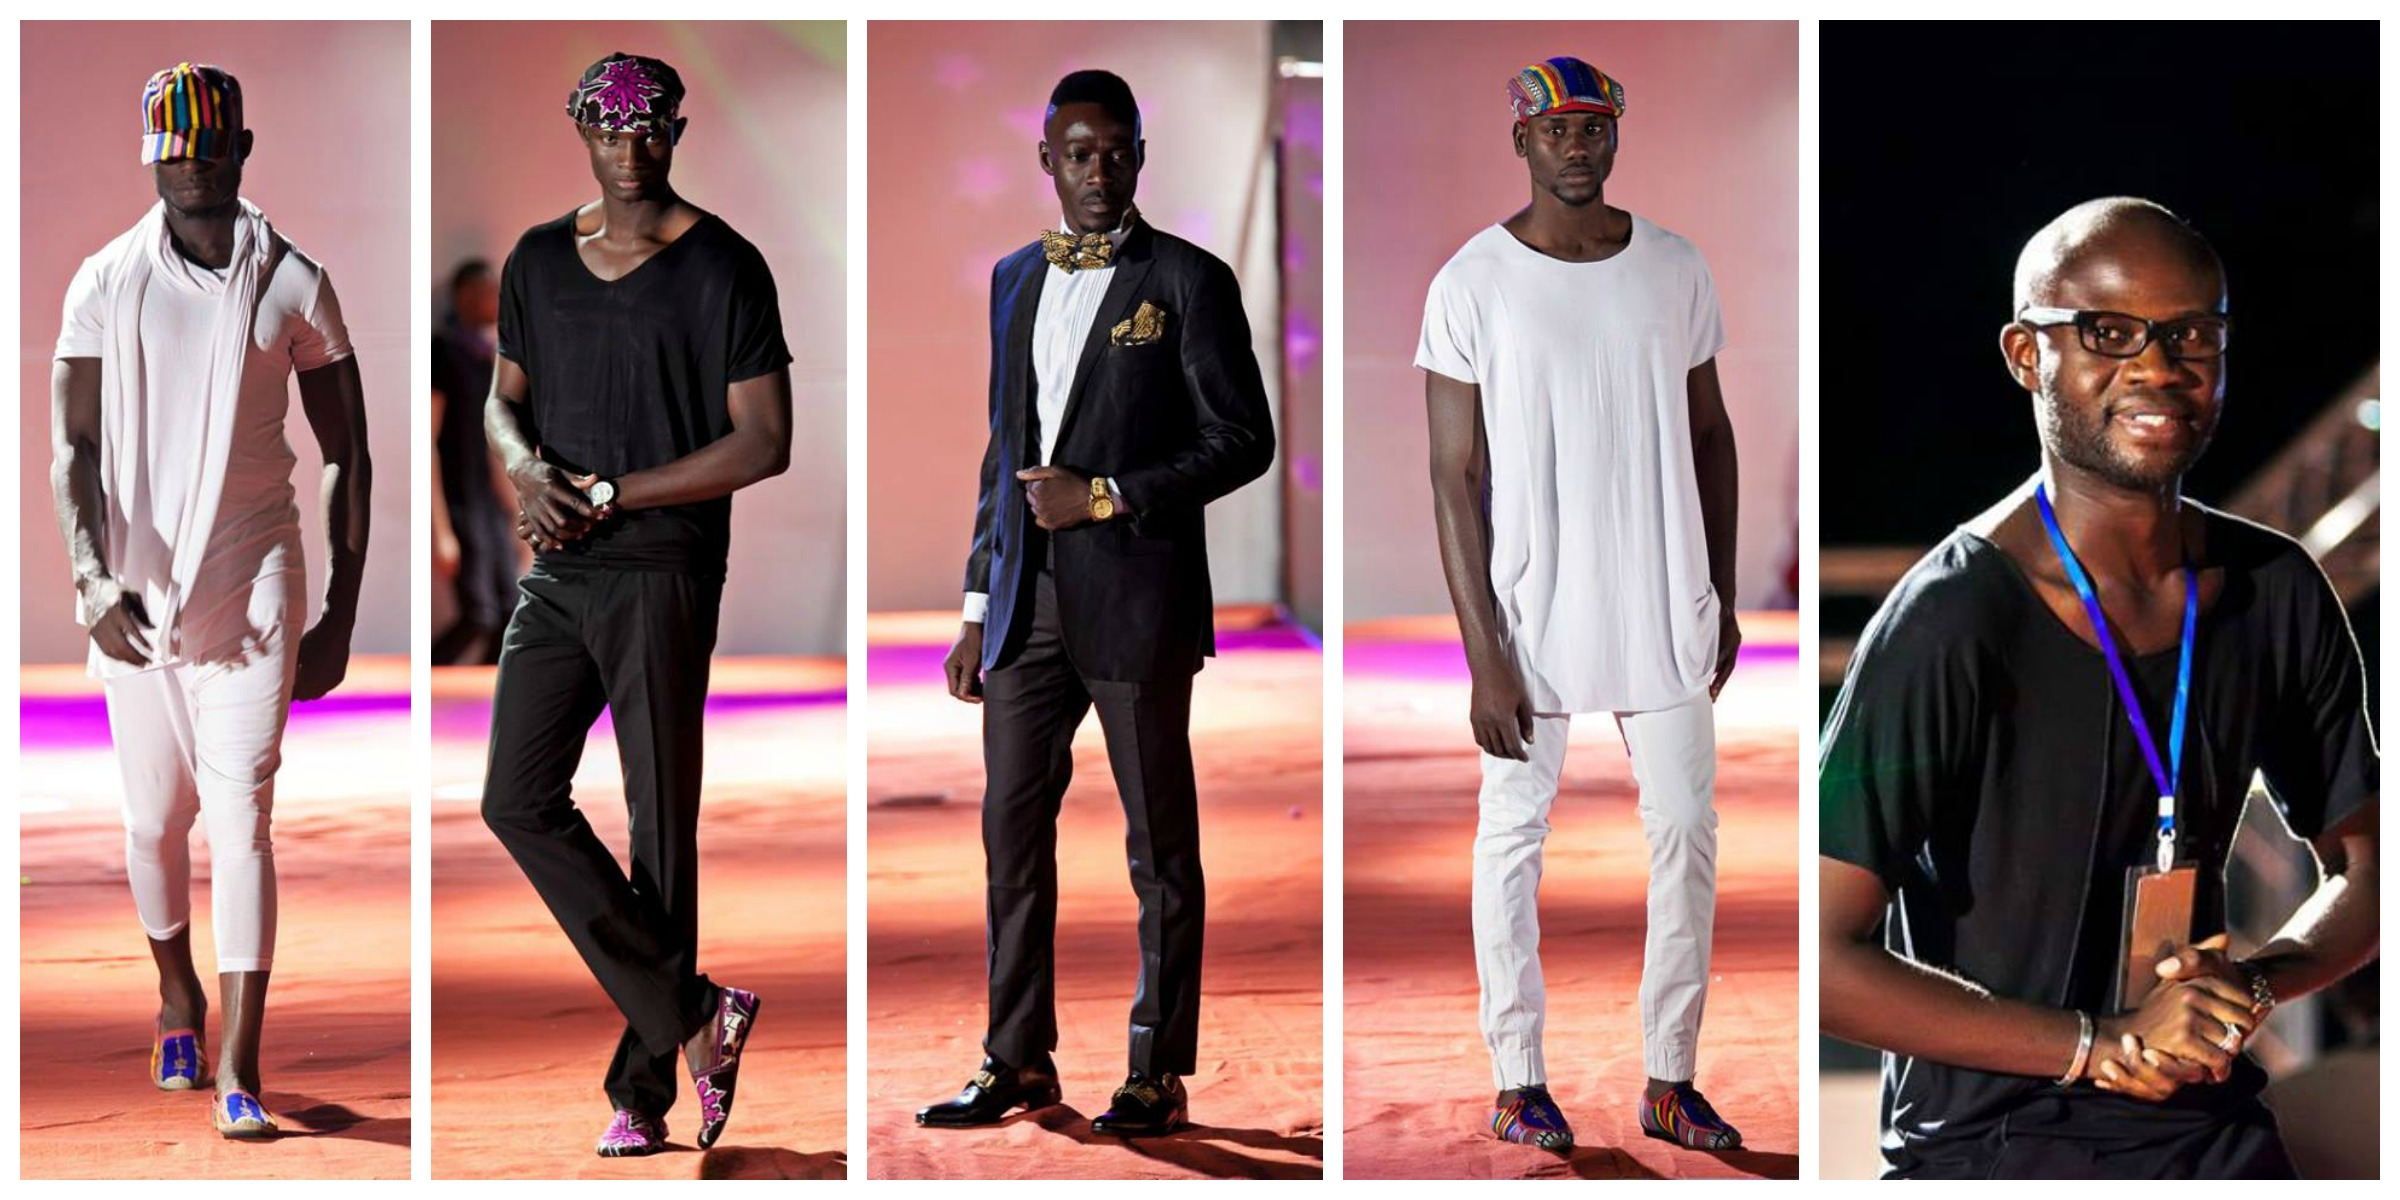 Samarra-Bamako Fashion WeeK